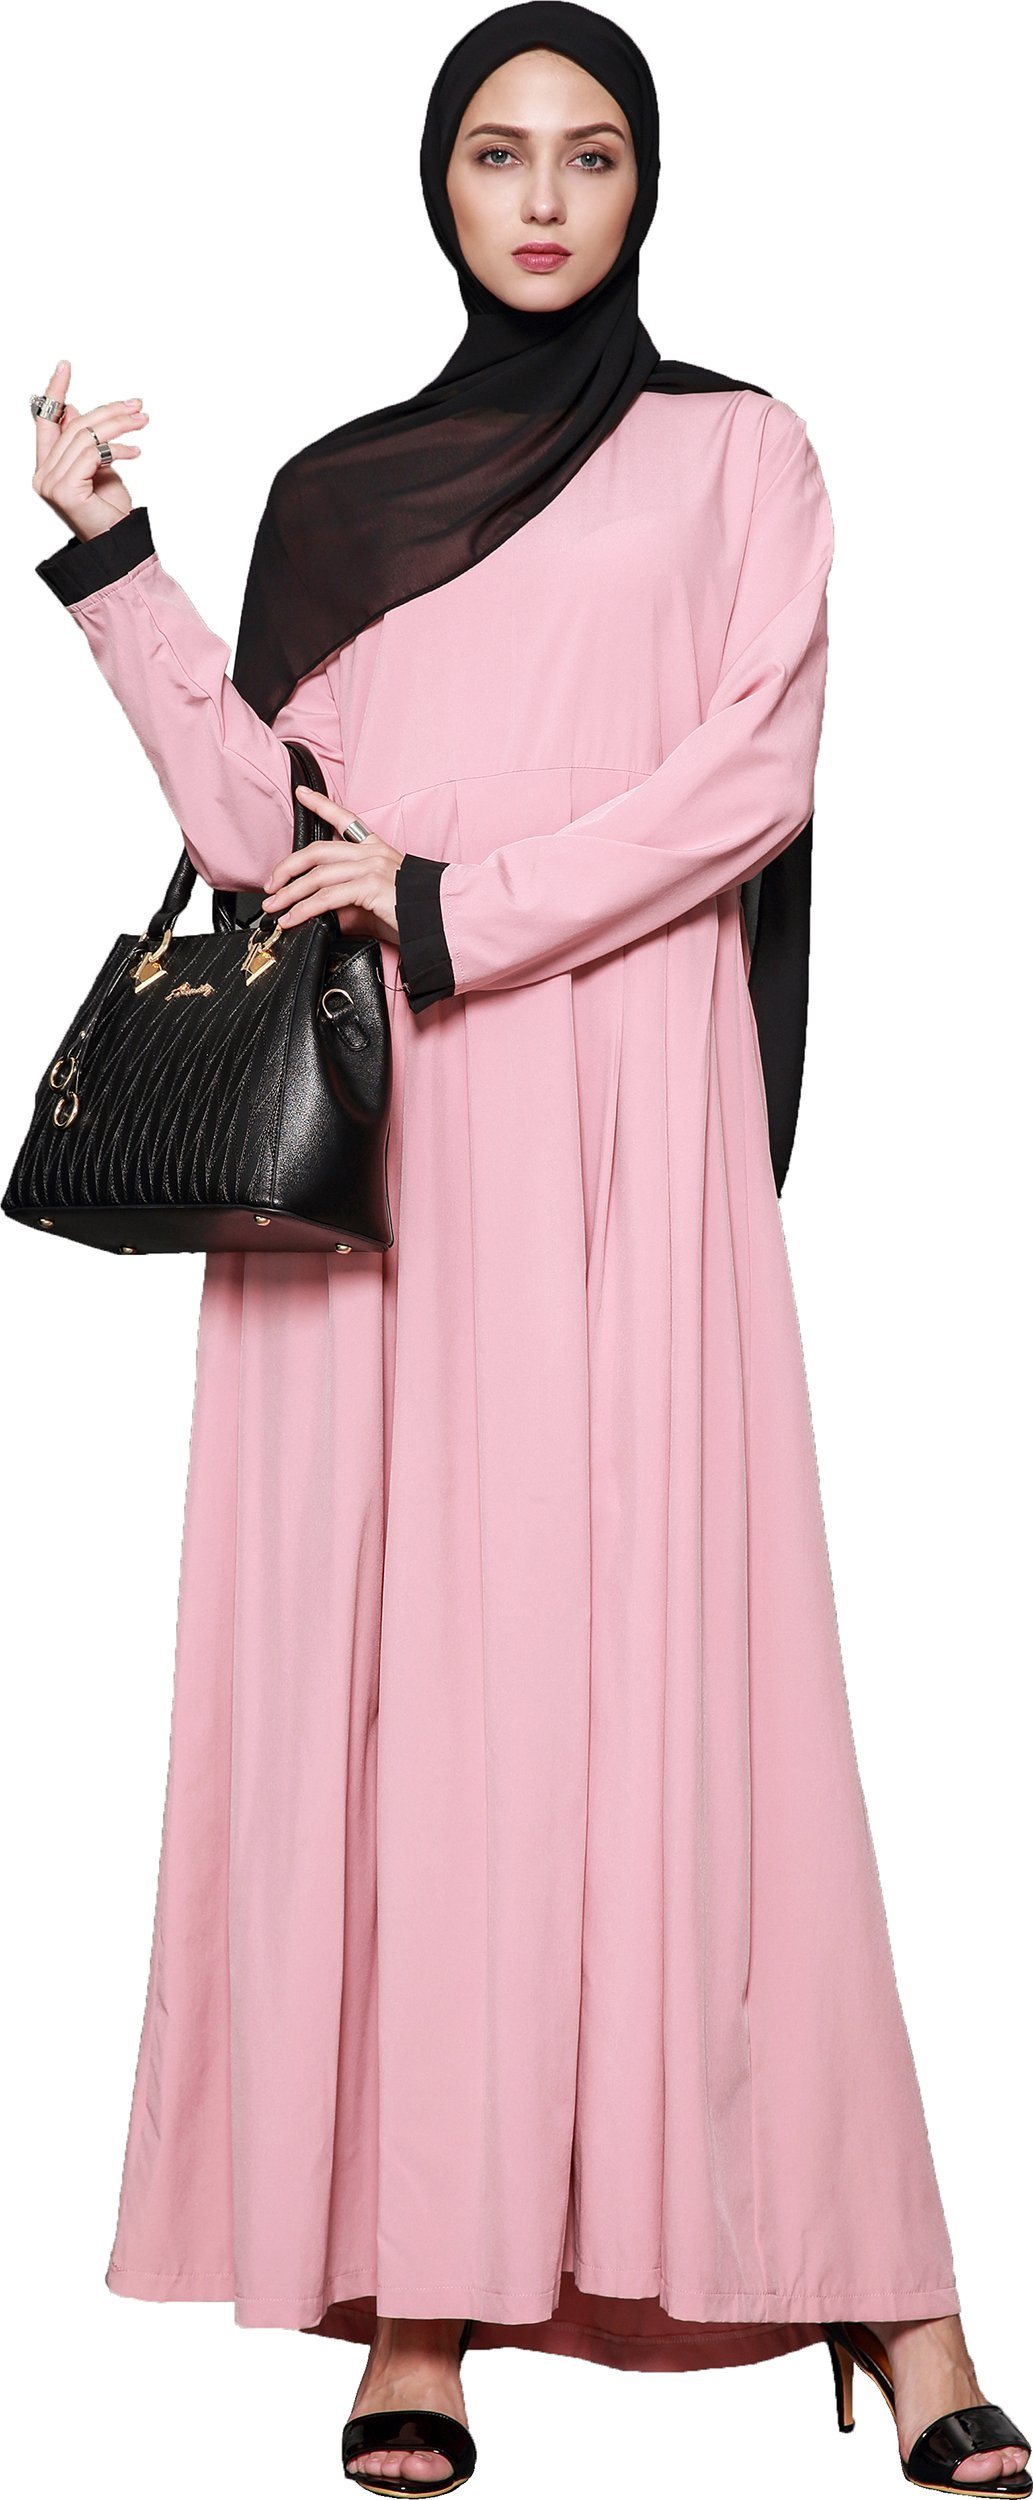 Ababalaya Women's Elegant Modest Muslim Full Length O-Neck Solid Pleated Runway Abaya S-4XL,Pink,Tag Size L = US Size 10-12 by Ababalaya (Image #1)